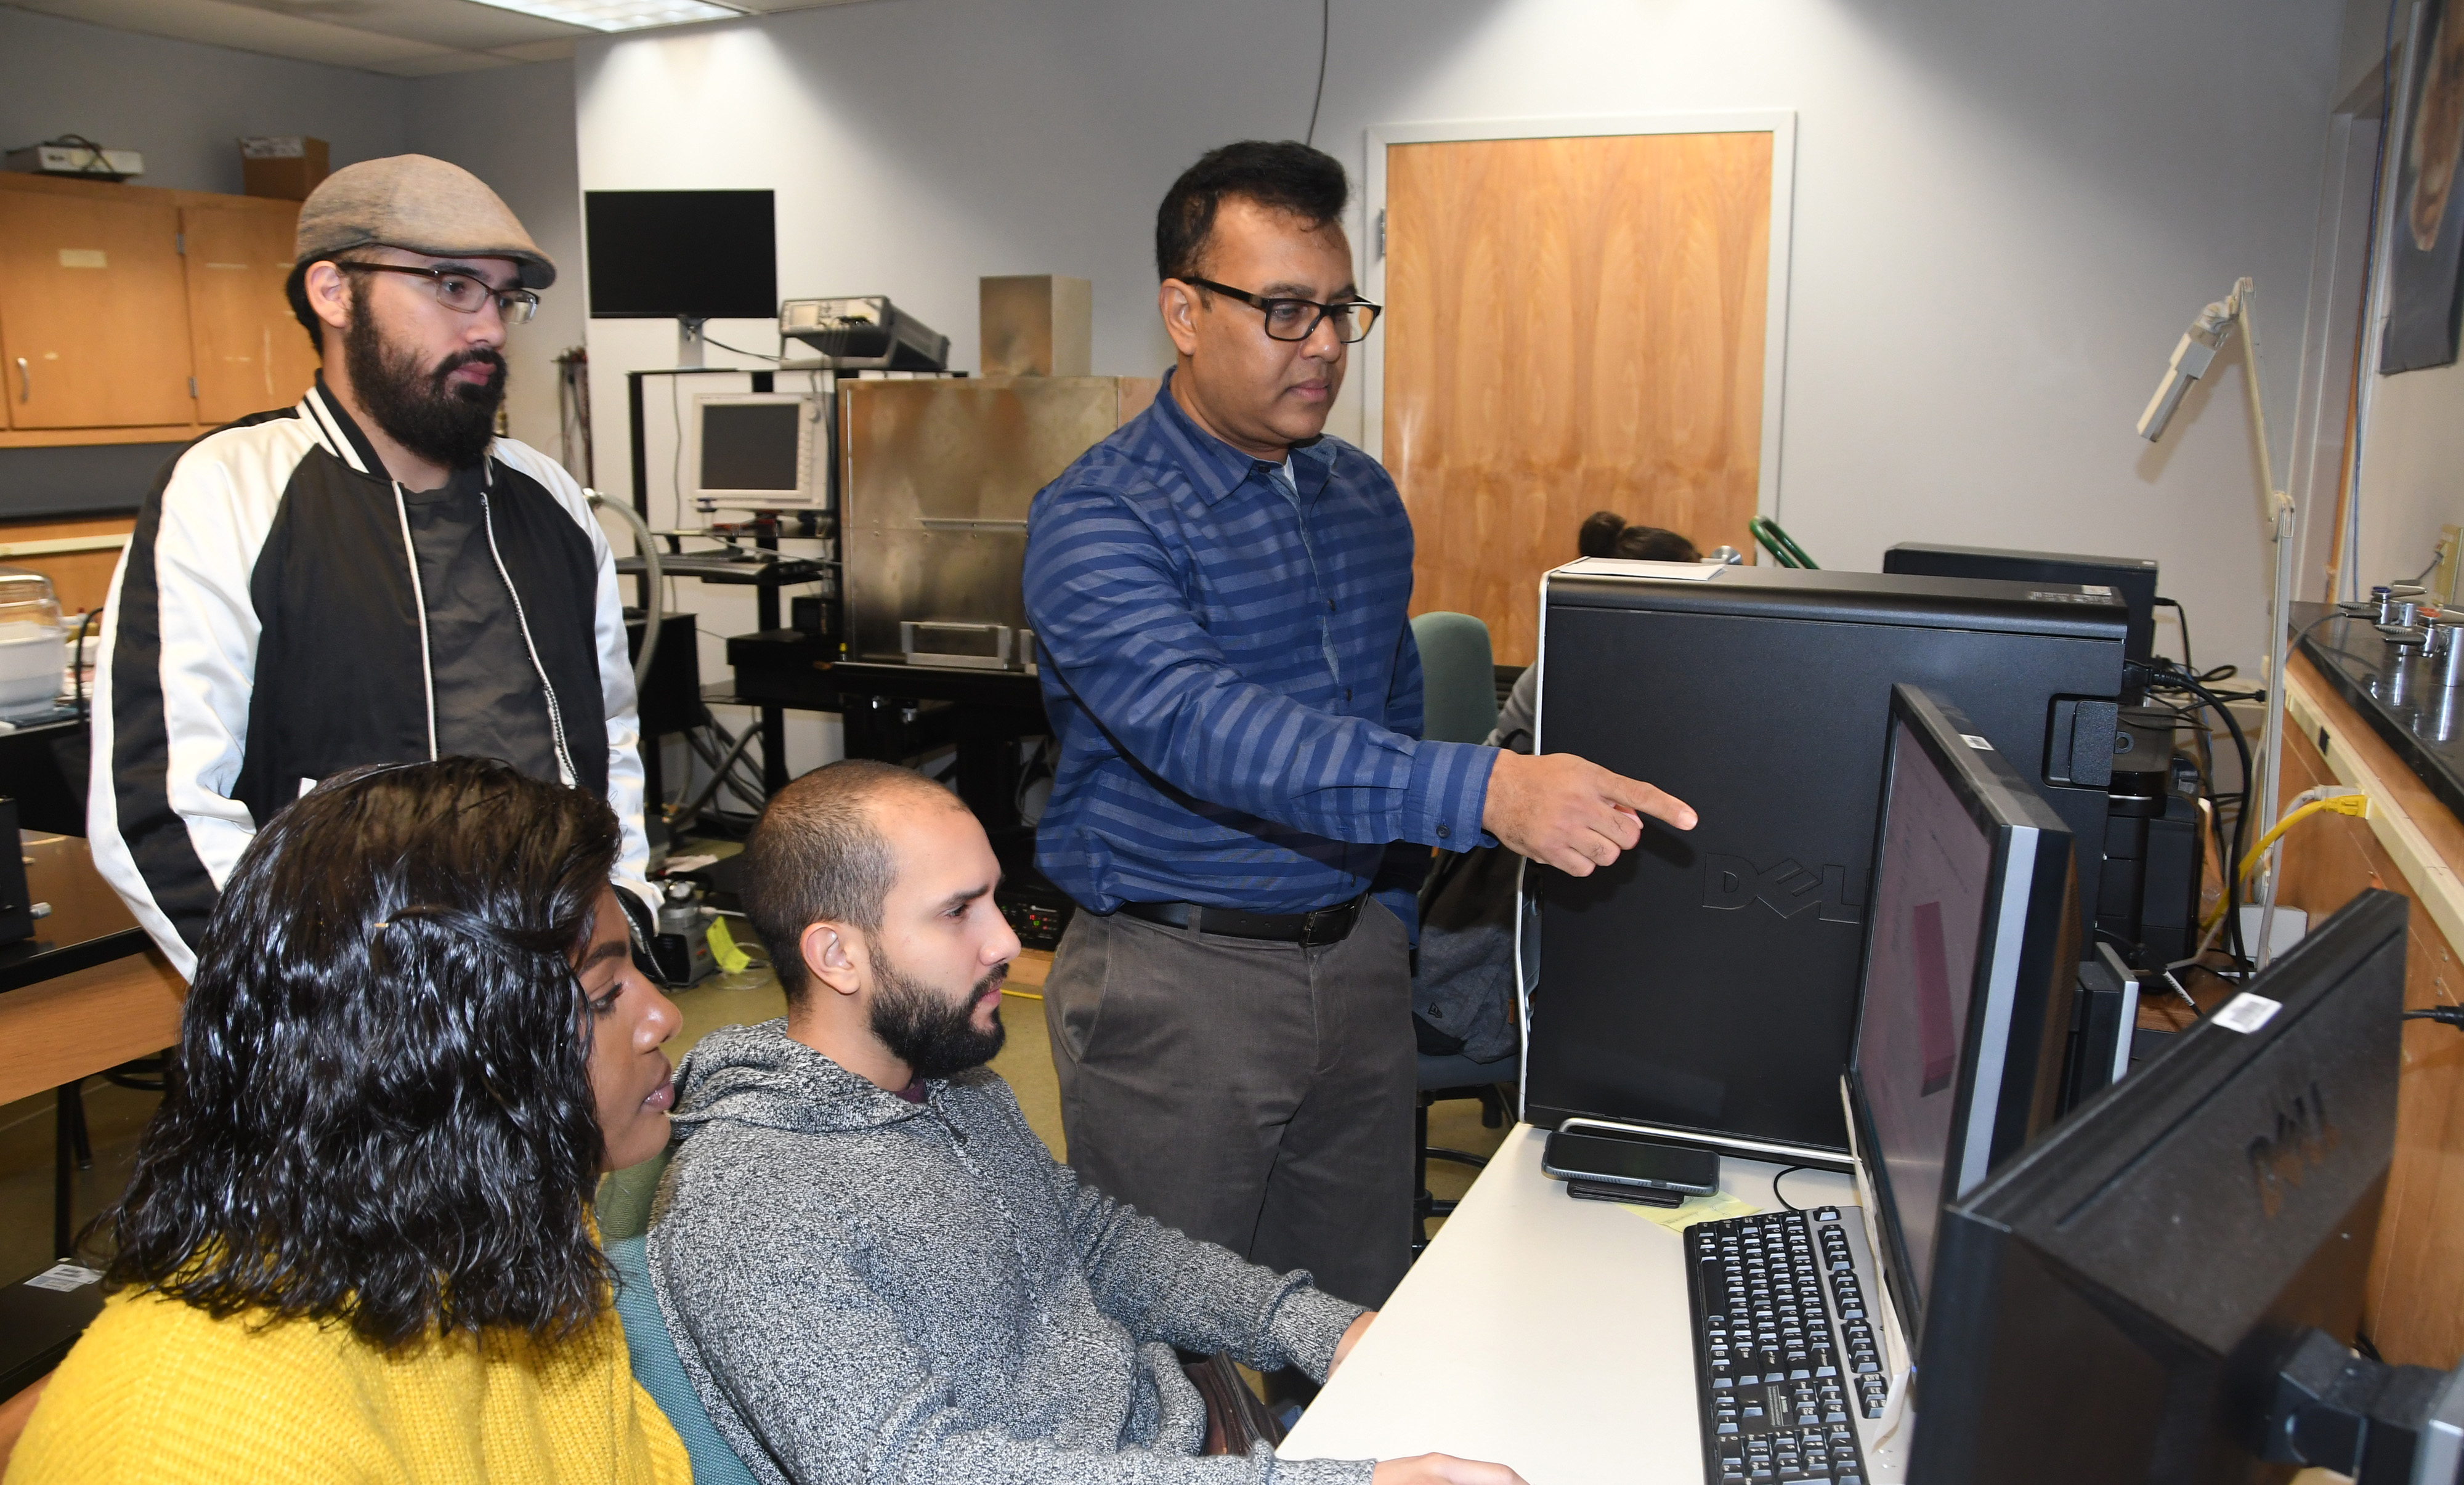 Dr. Mukti Rana (r), principal investigator of the grant, will provide these students -- (l-r) Larine Mbabit, Jaime Cardona and Kevin Diaz -- and others some hands-on research experience through this project.